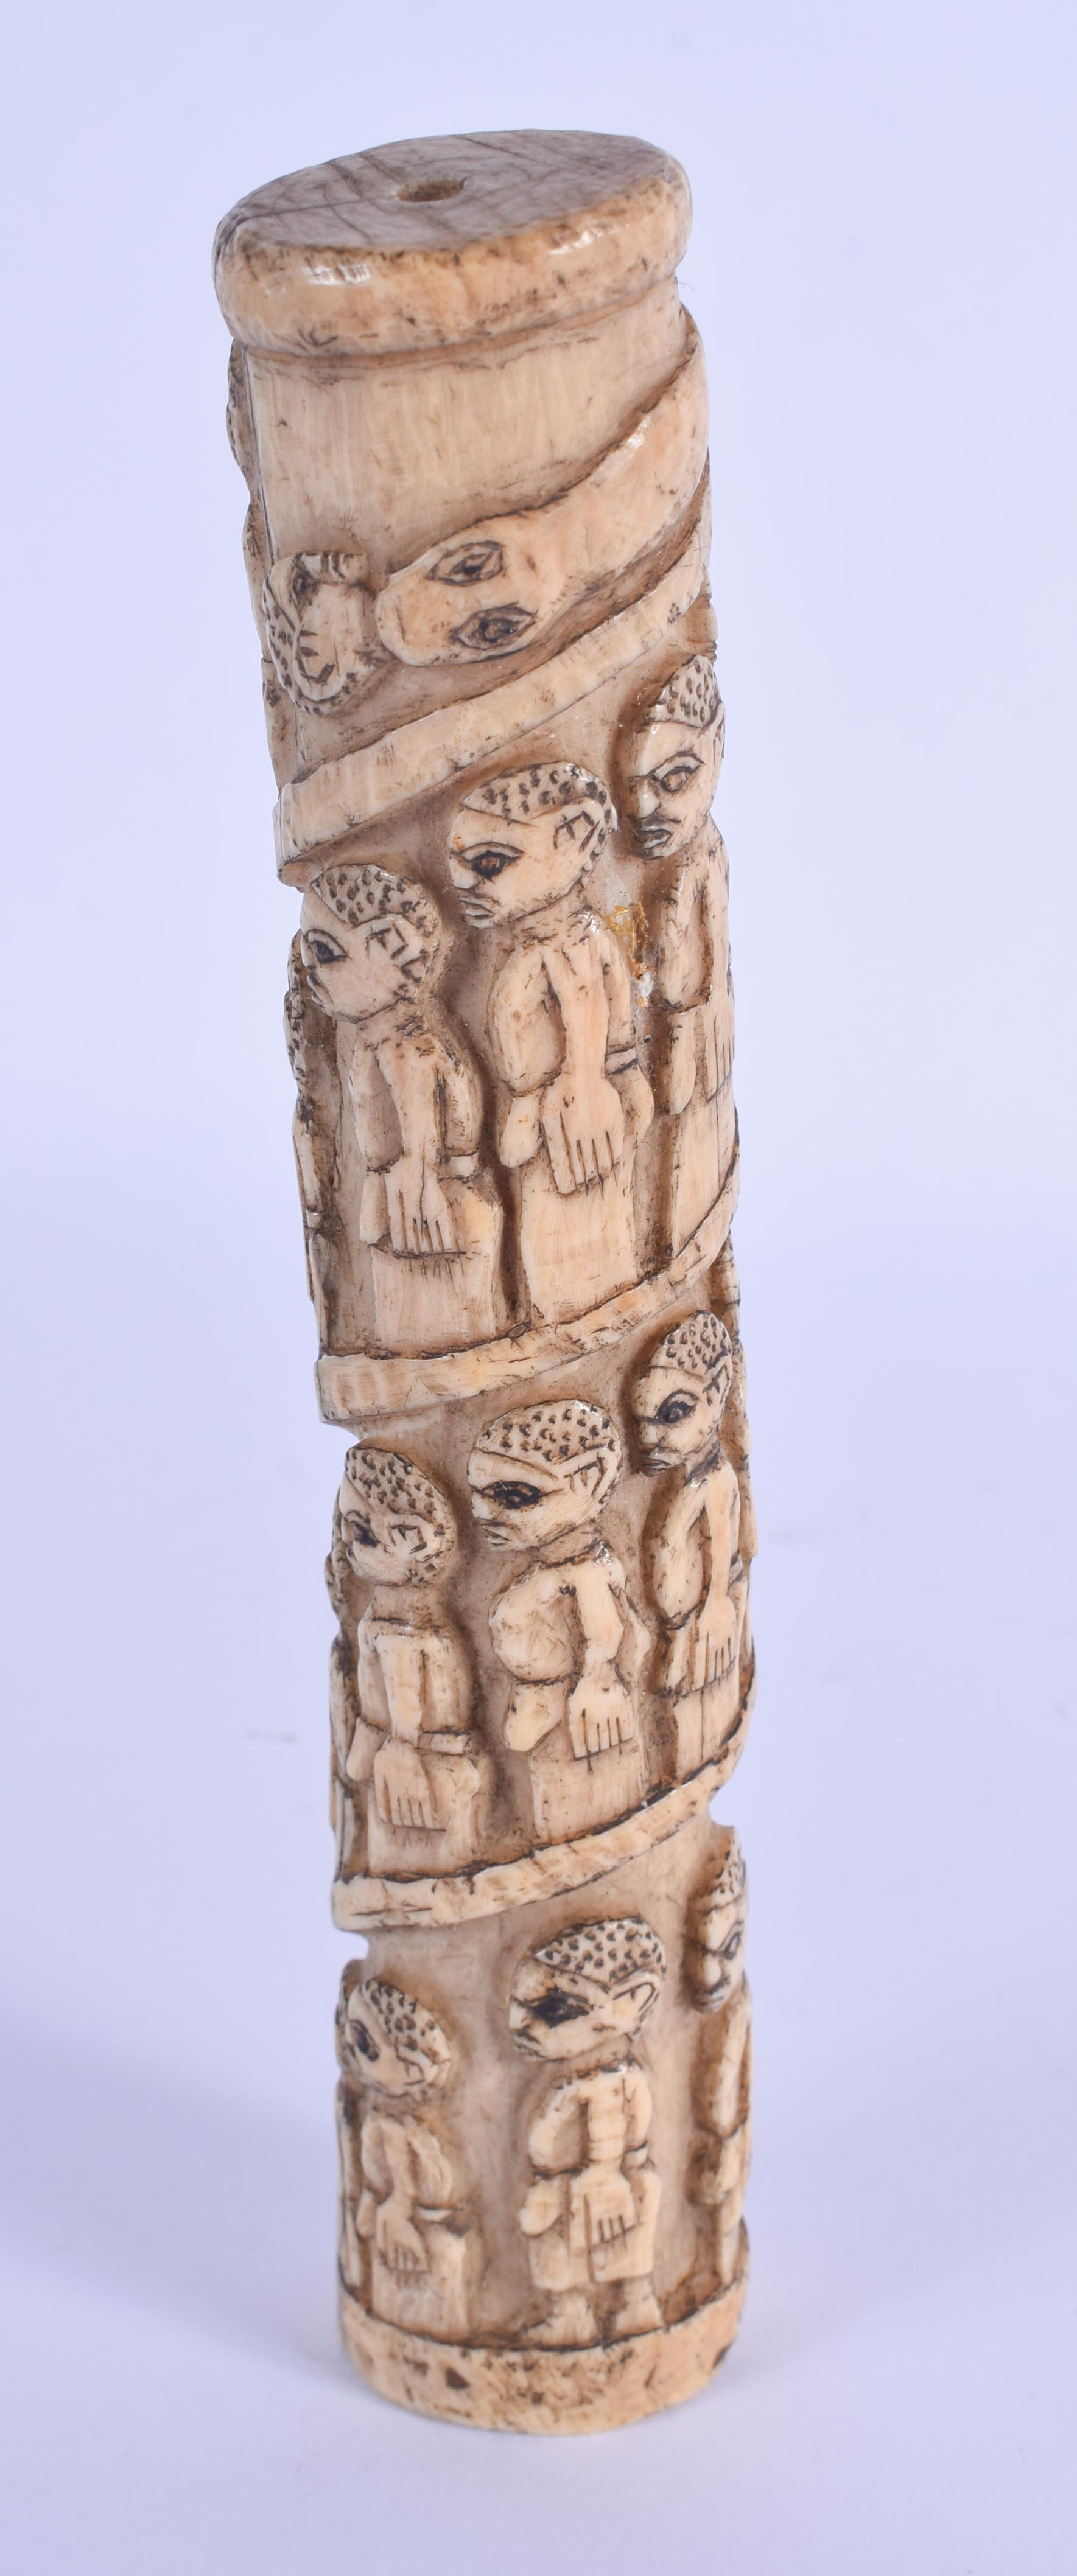 A 19TH CENTURY AFRICAN TRIBAL CARVED BONE PROCESSIONAL POUNDER decorated with figures. 18 cm high. - Image 2 of 3